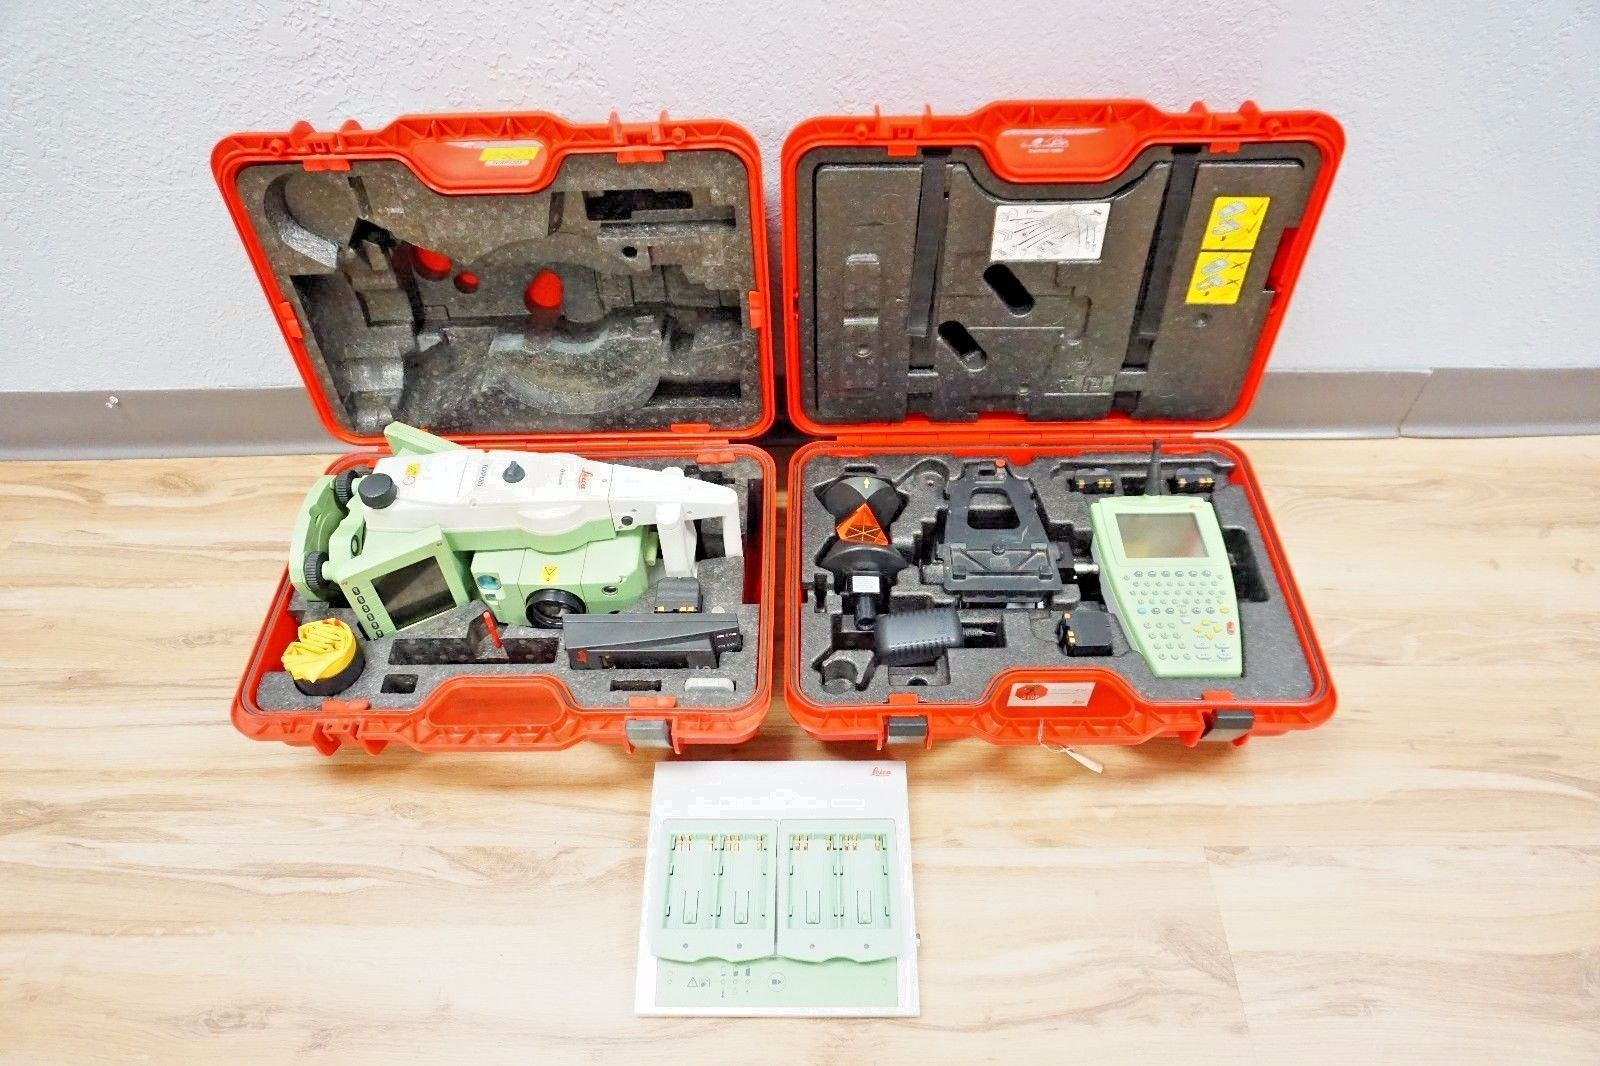 Leica TCRP1203 3″ Sec R300 Reflectorless Robotic Total Station w/ RX1250